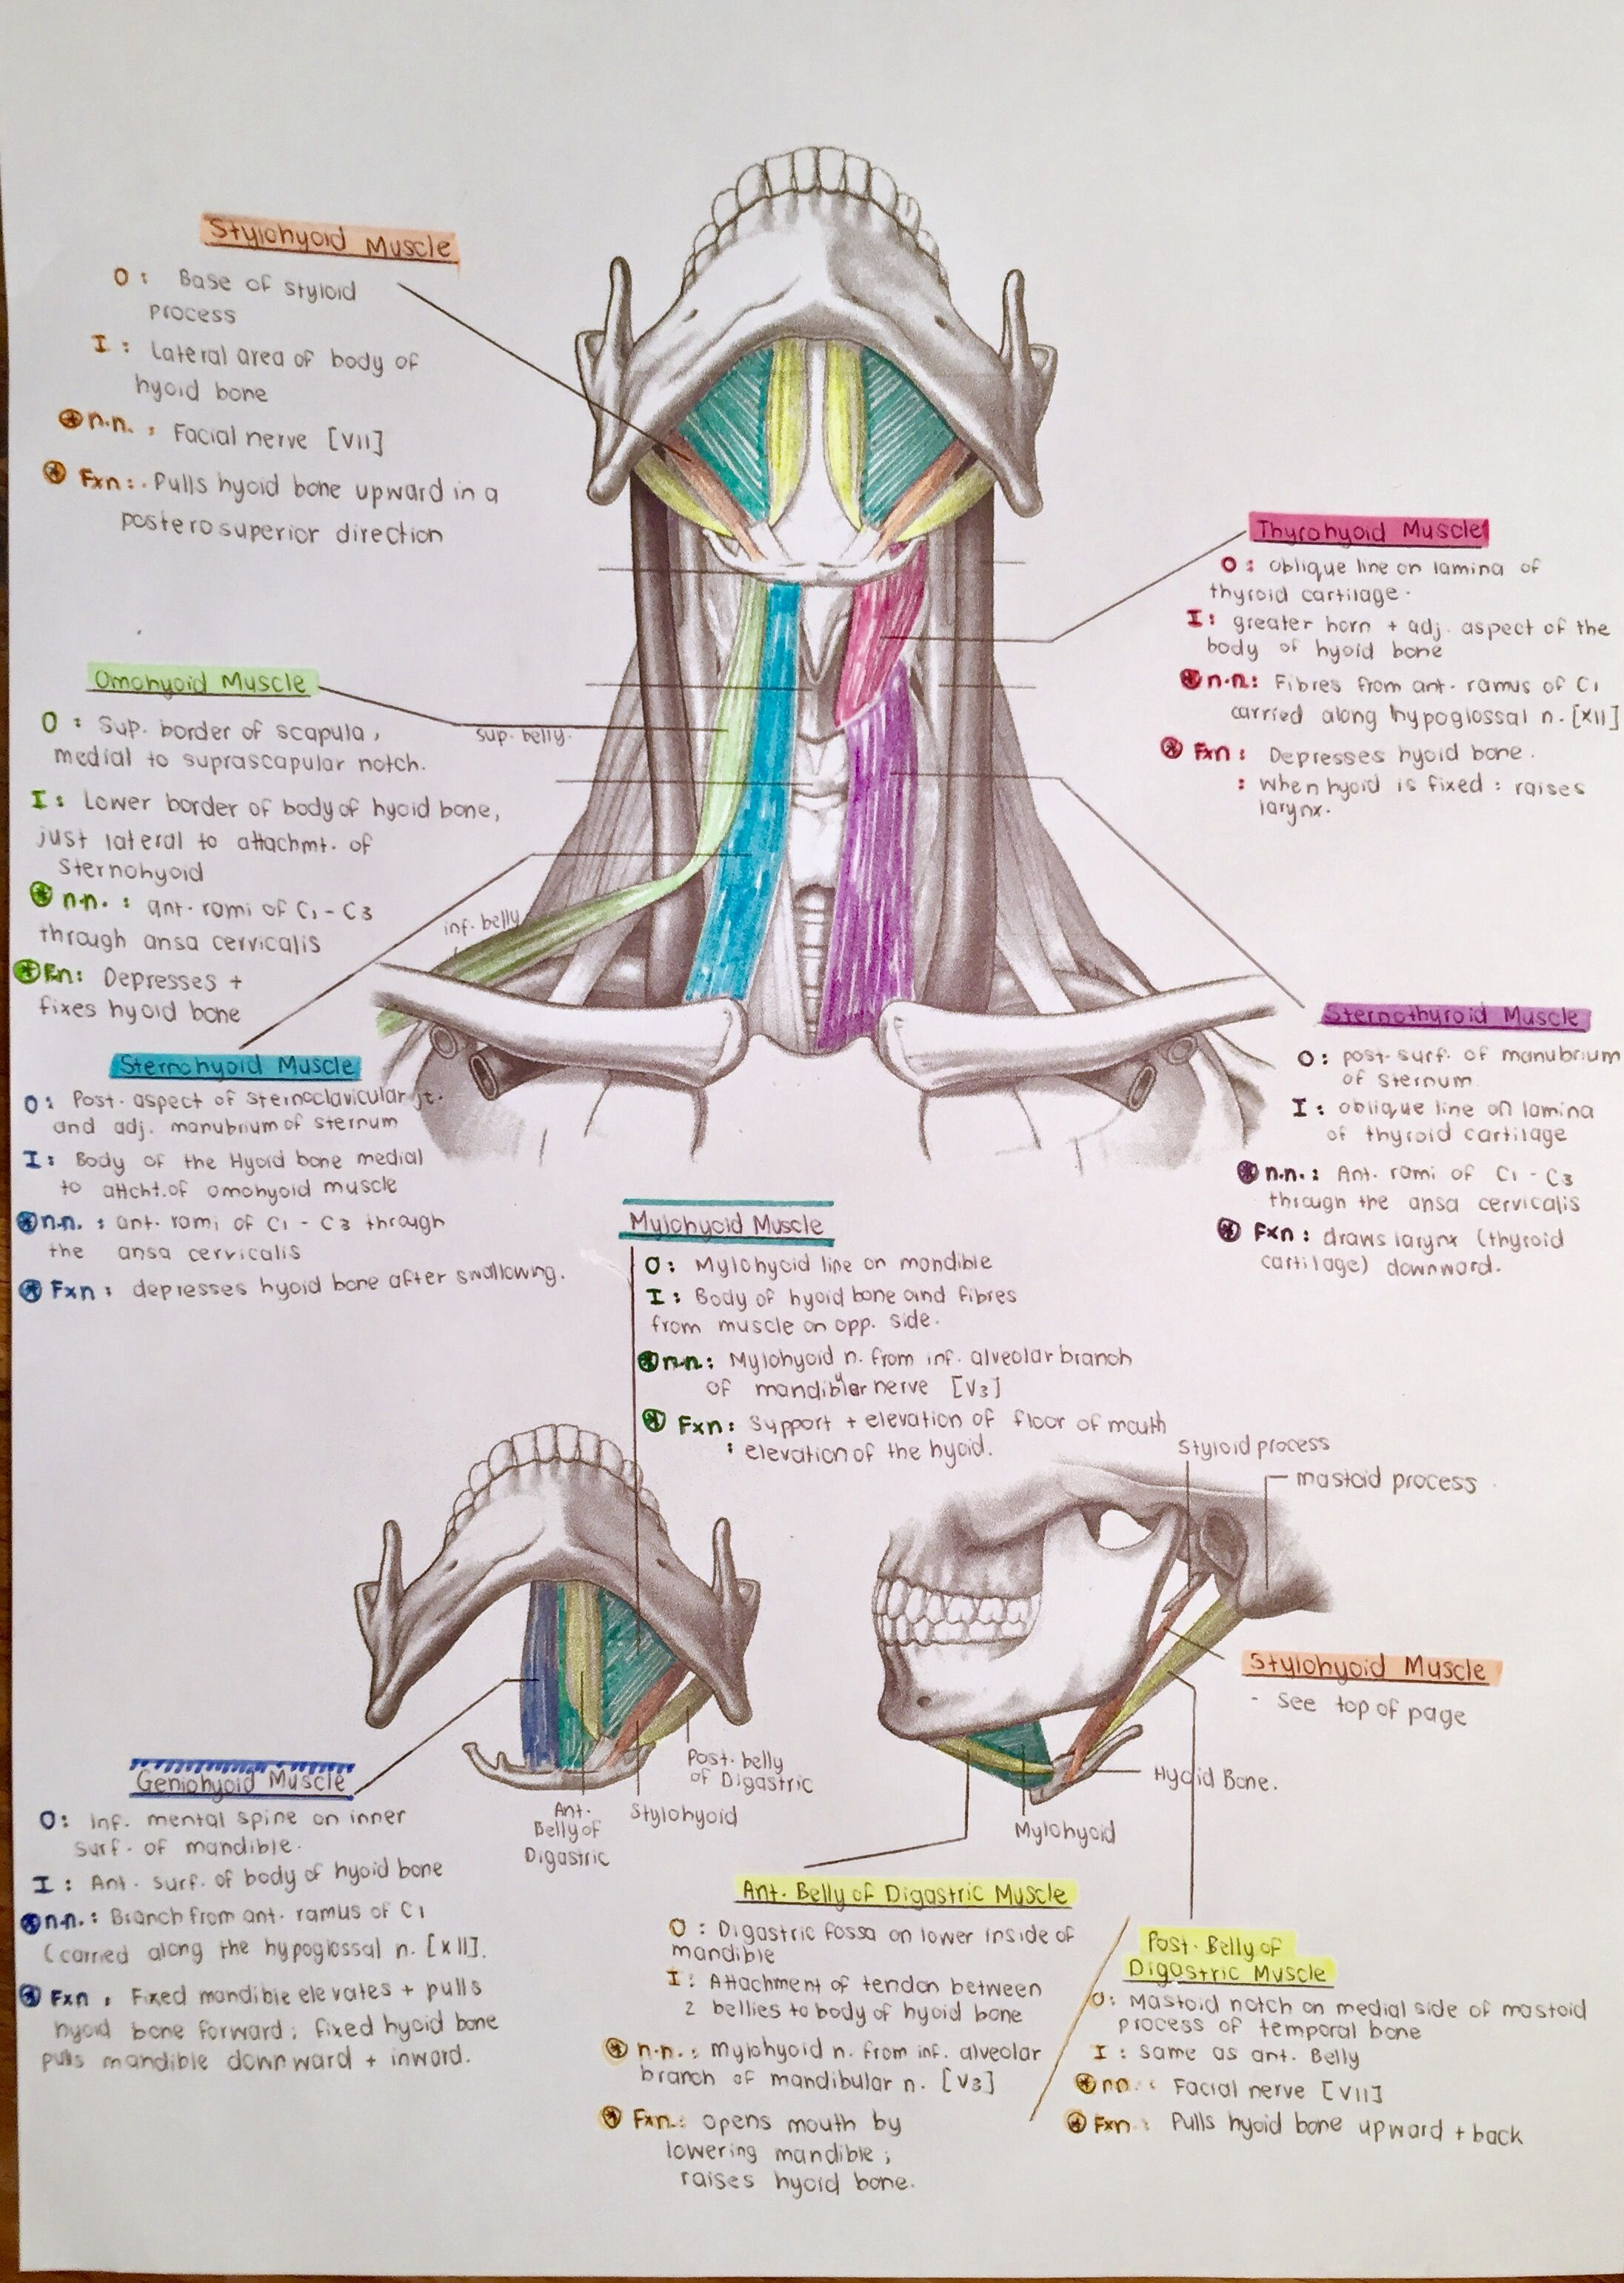 Muscles Of The Anterior Triangle Of The Neck